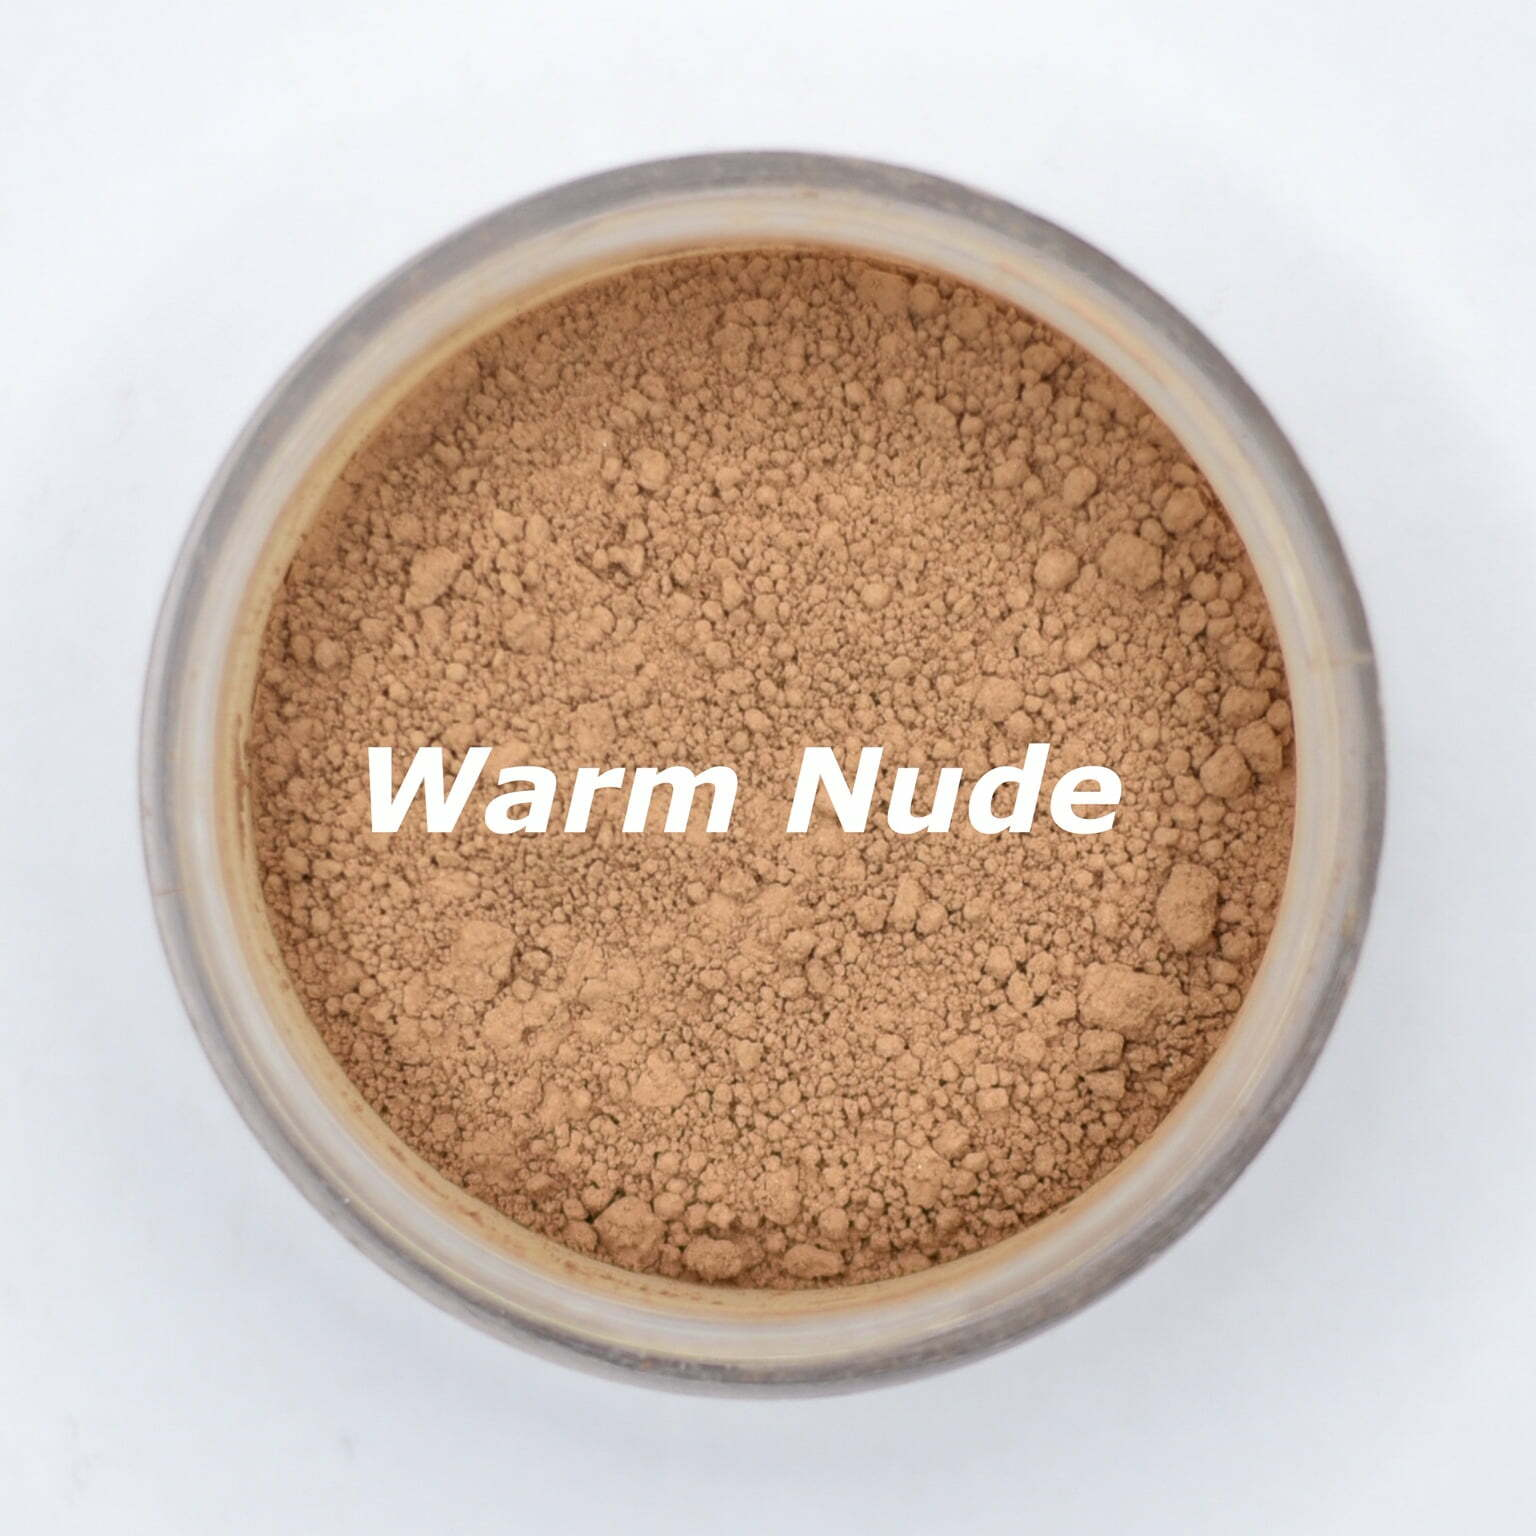 warm nude foundation shade